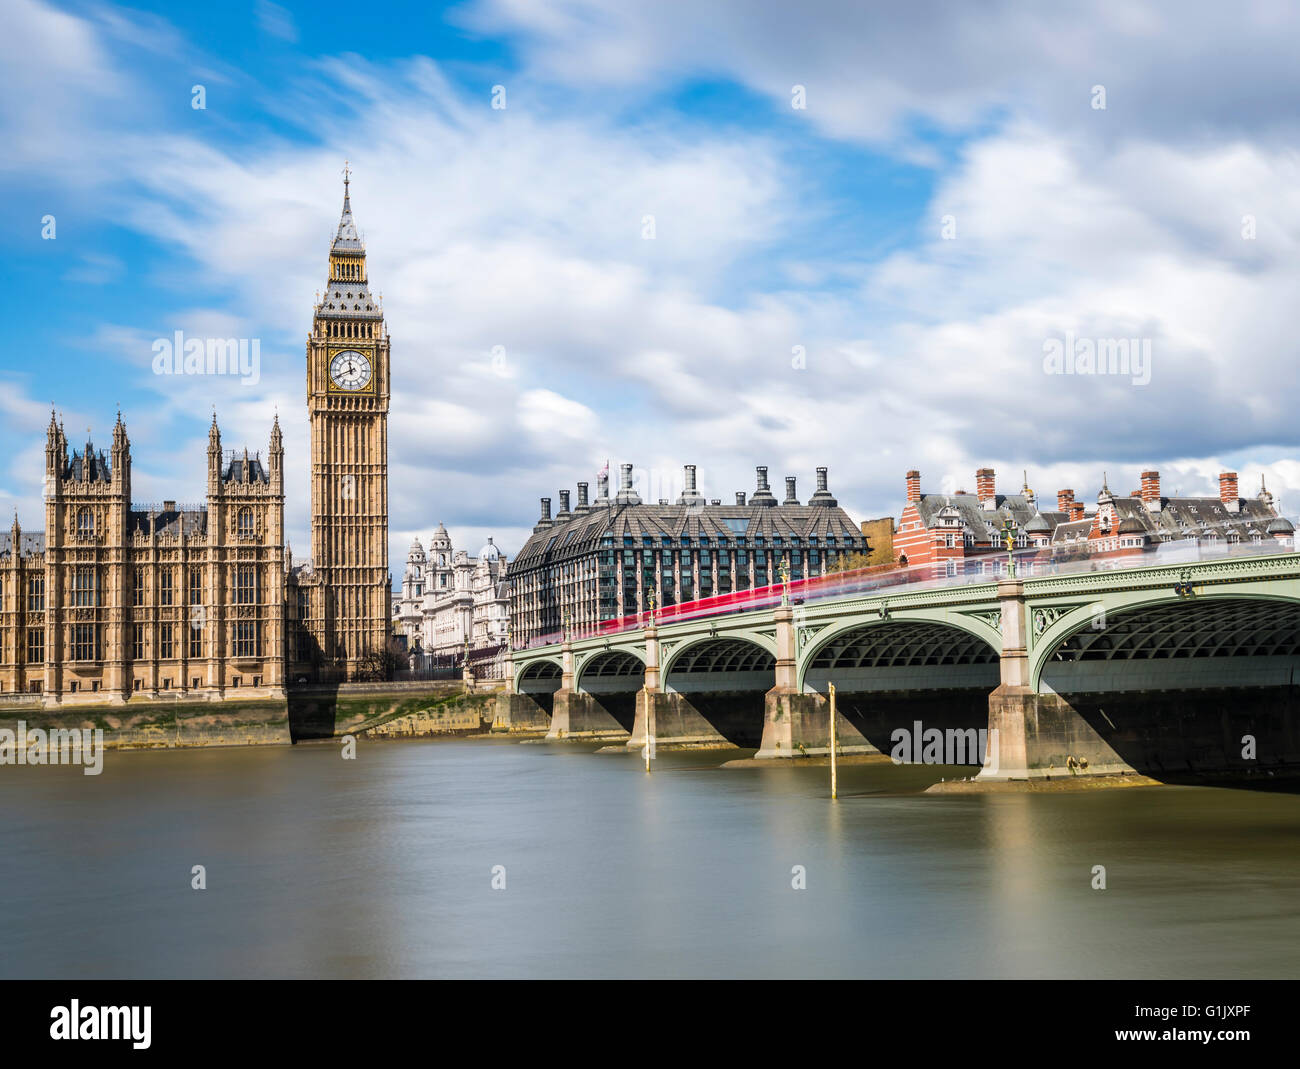 Long exposure of red buses on Westminster Bridge, London, UK. - Stock Image